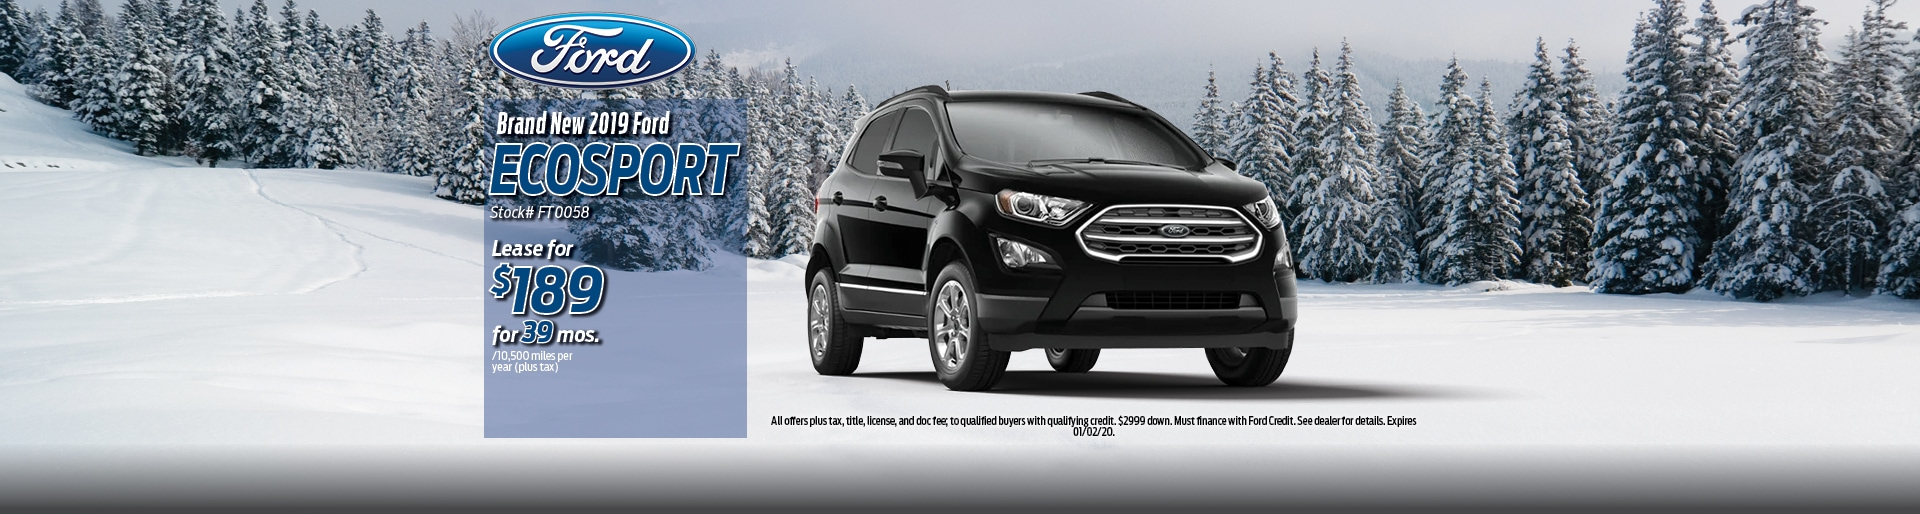 2019 Ford Ecosport Lease Deal